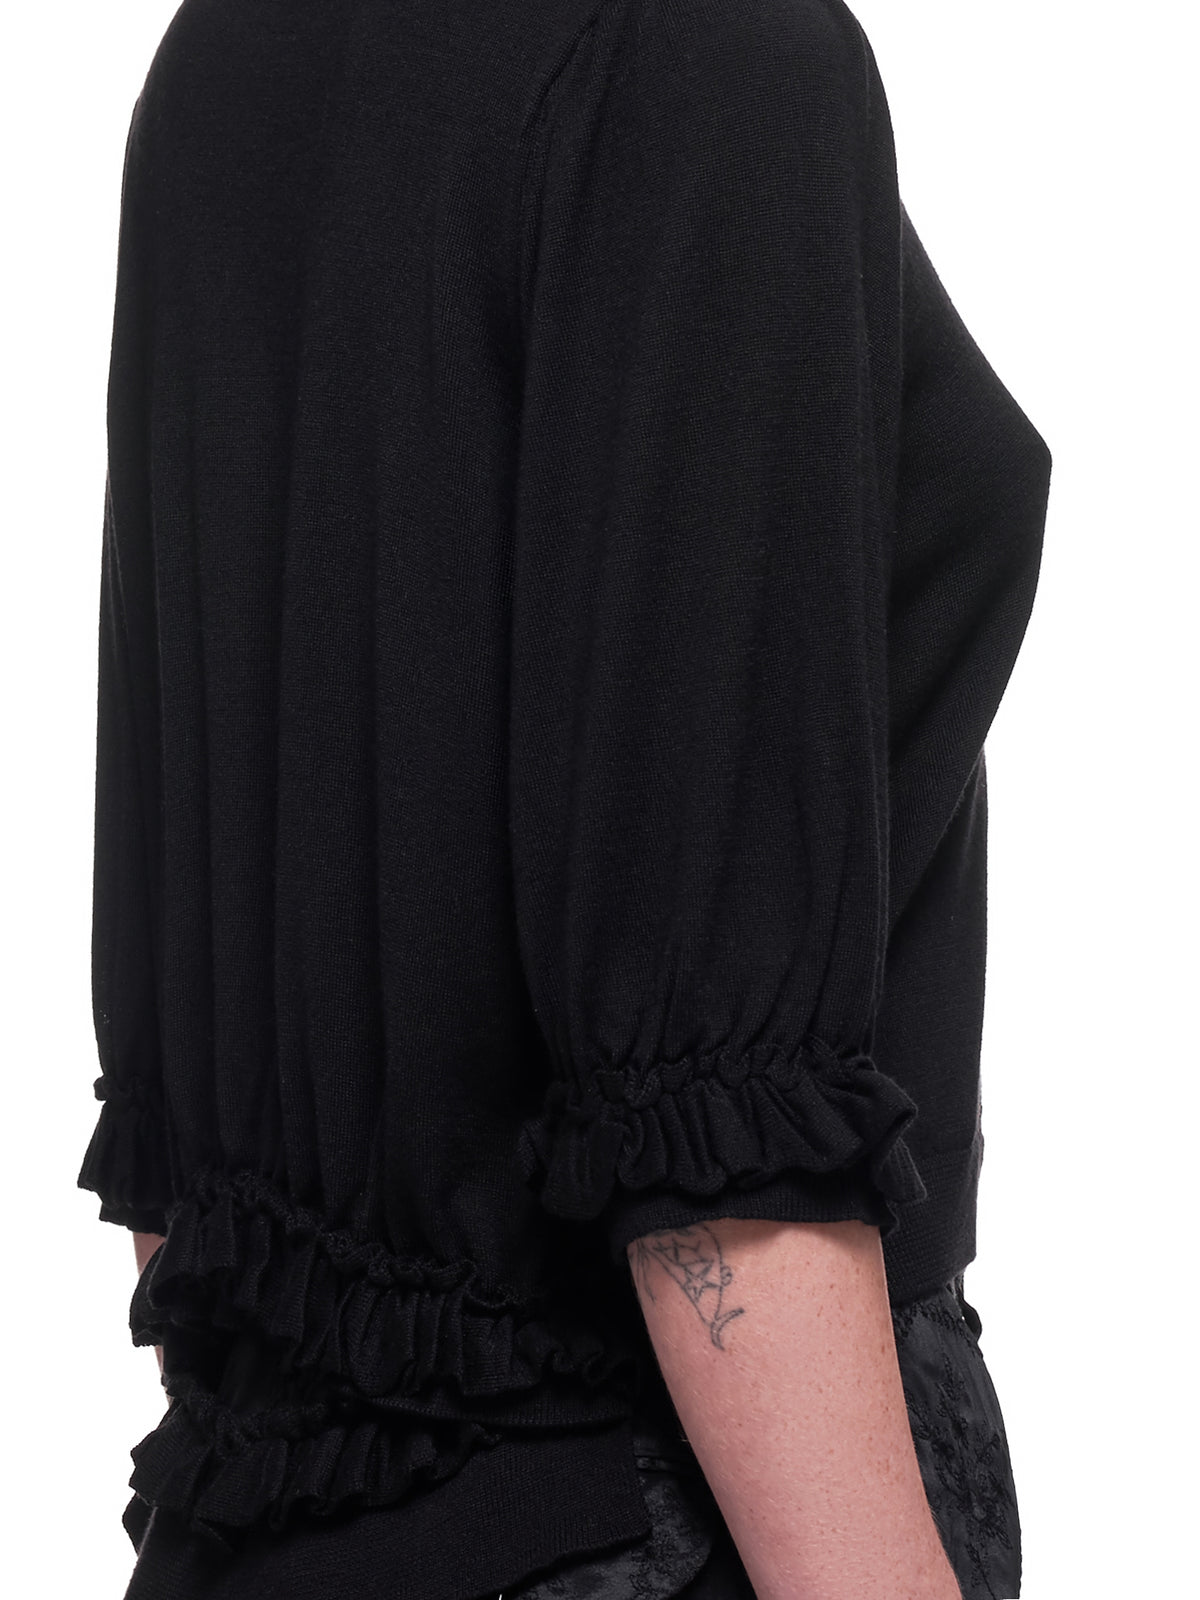 Puff Sleeve Cardigan (CMK-4B-0630-BLACK-CLEAR)